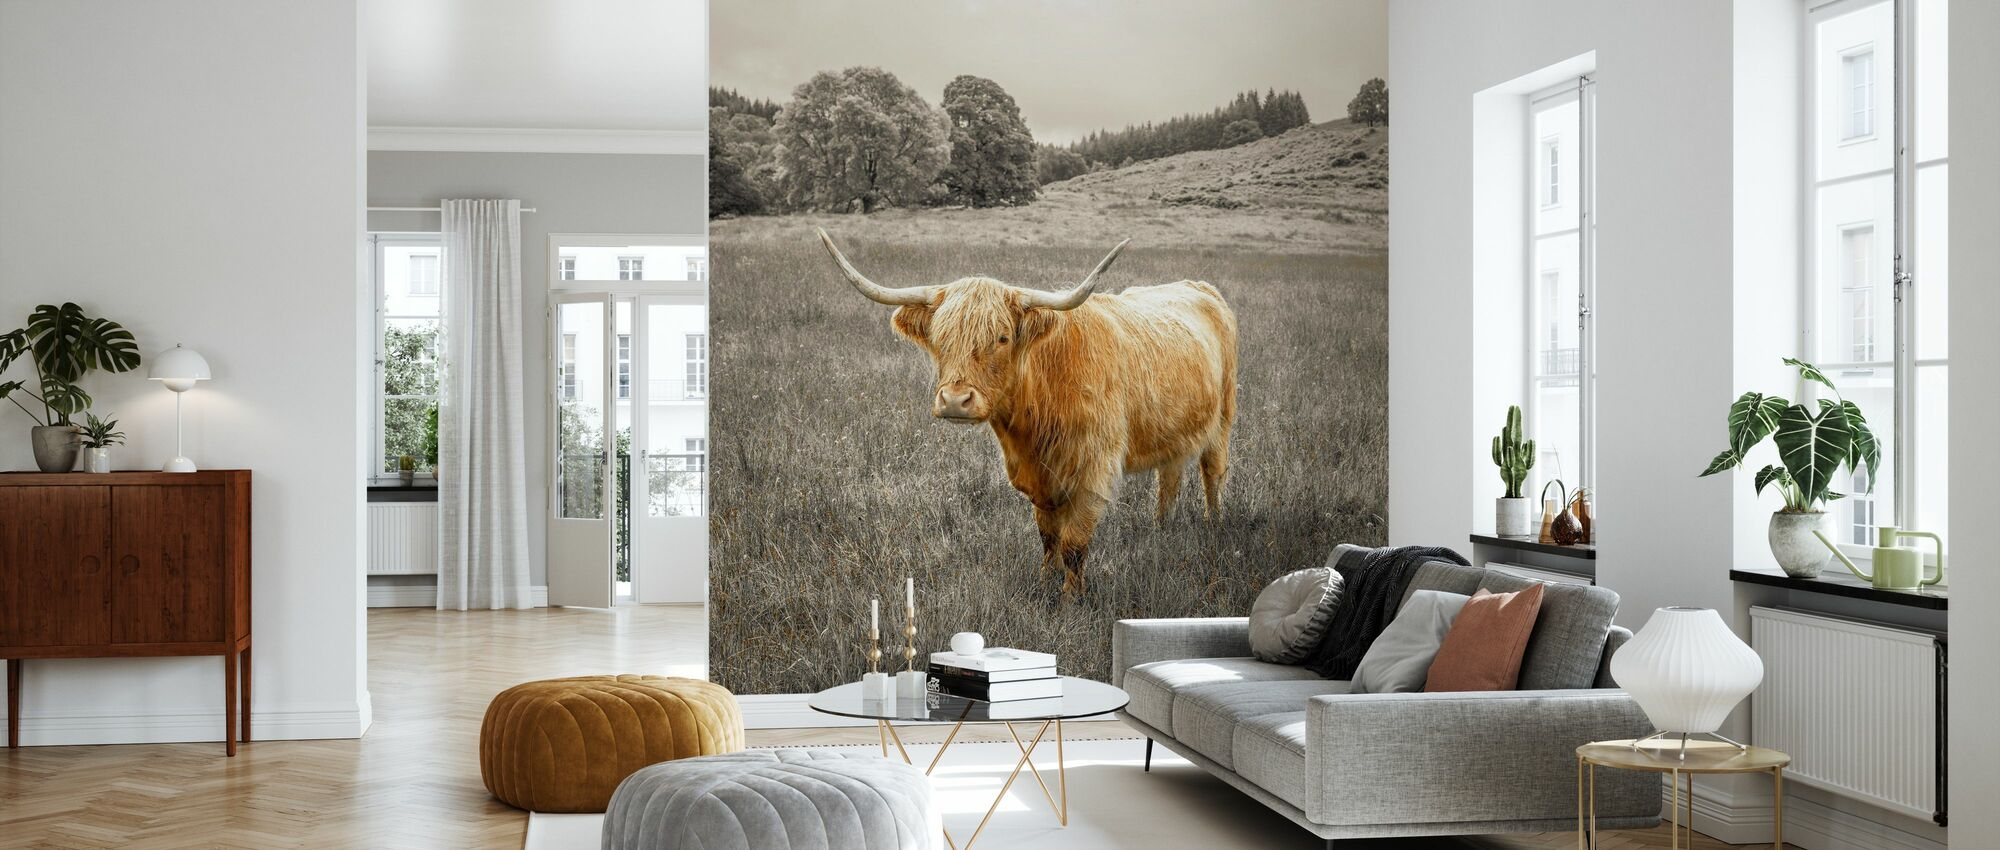 Noble Highland Cow - Wallpaper - Living Room